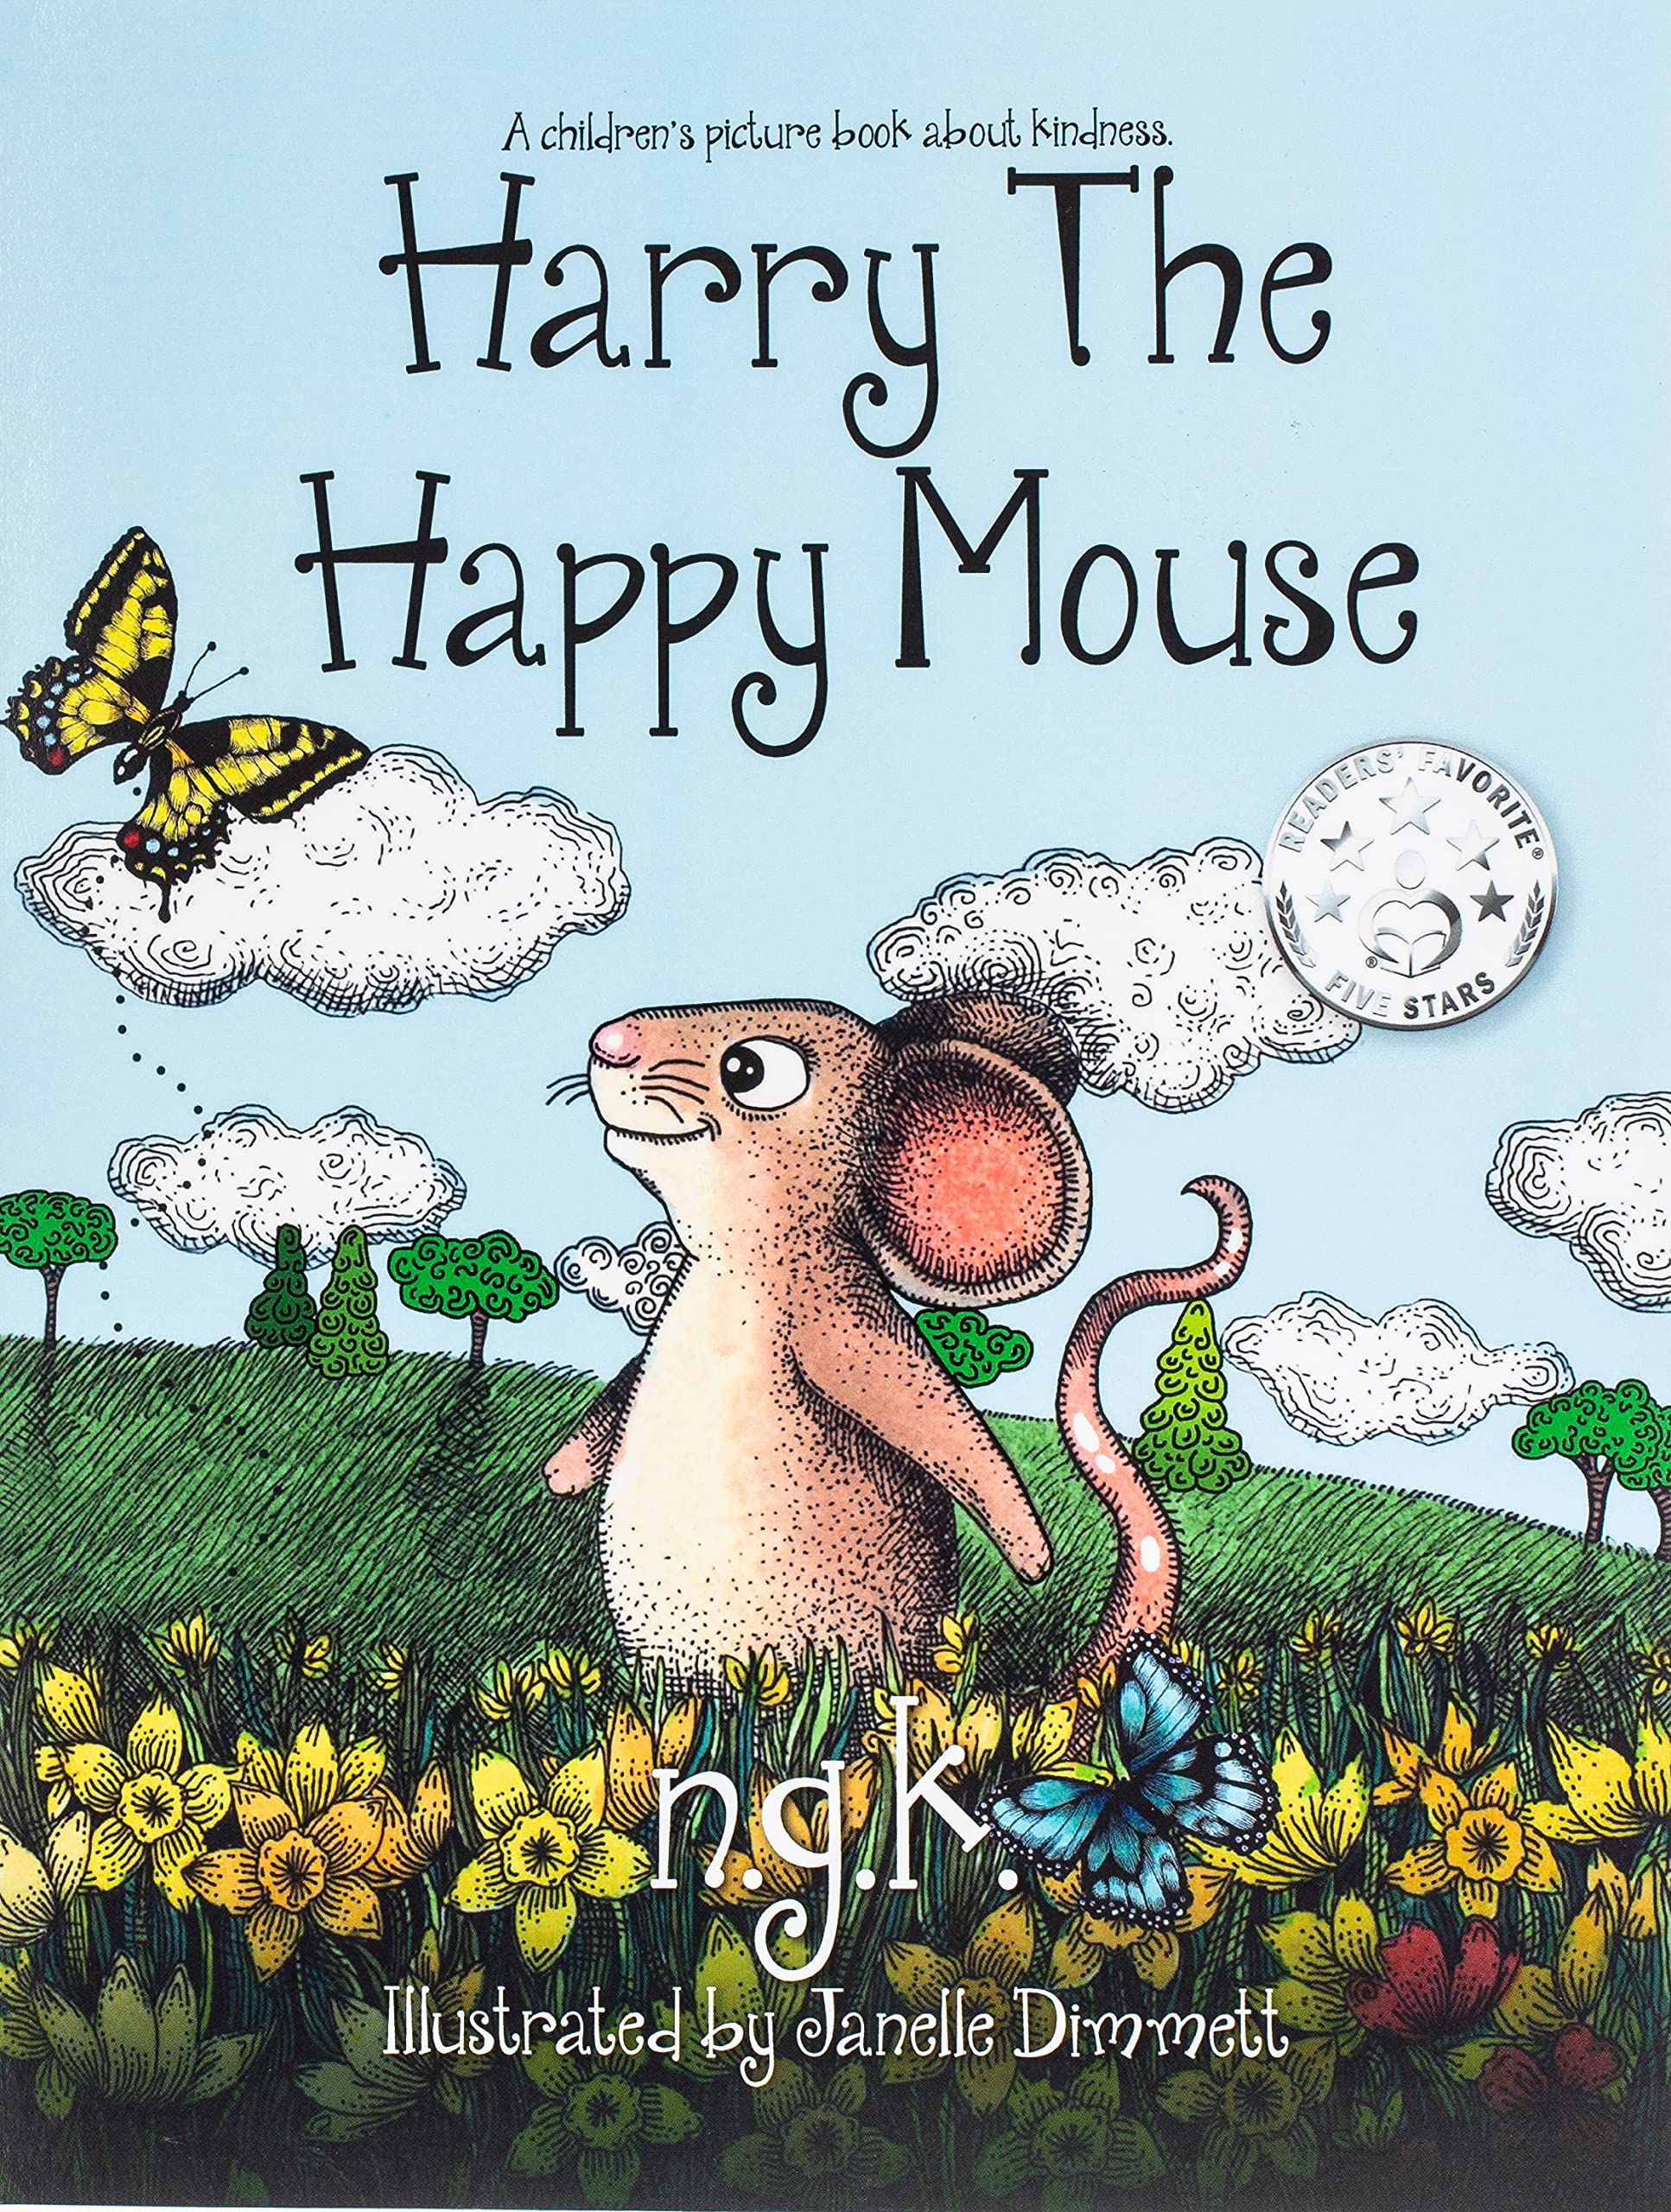 Harry The Happy Mouse: Teaching children to be kind to each other.: 2:  Amazon.co.uk: N G K: 9780993367007: Books